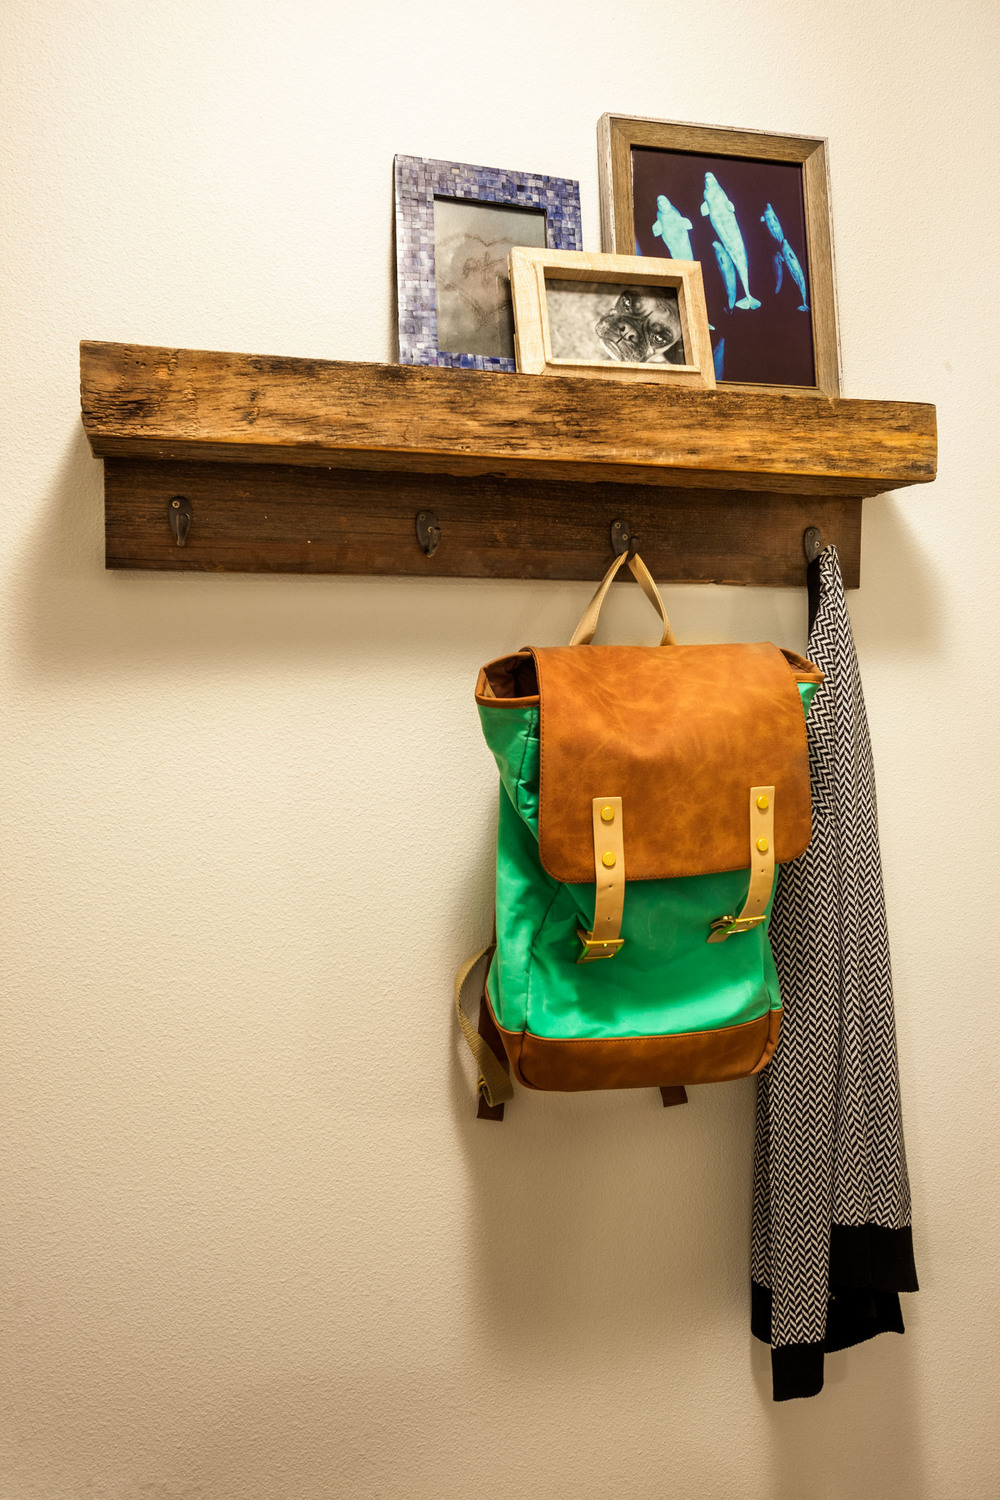 Shelf_bag_0320.jpg